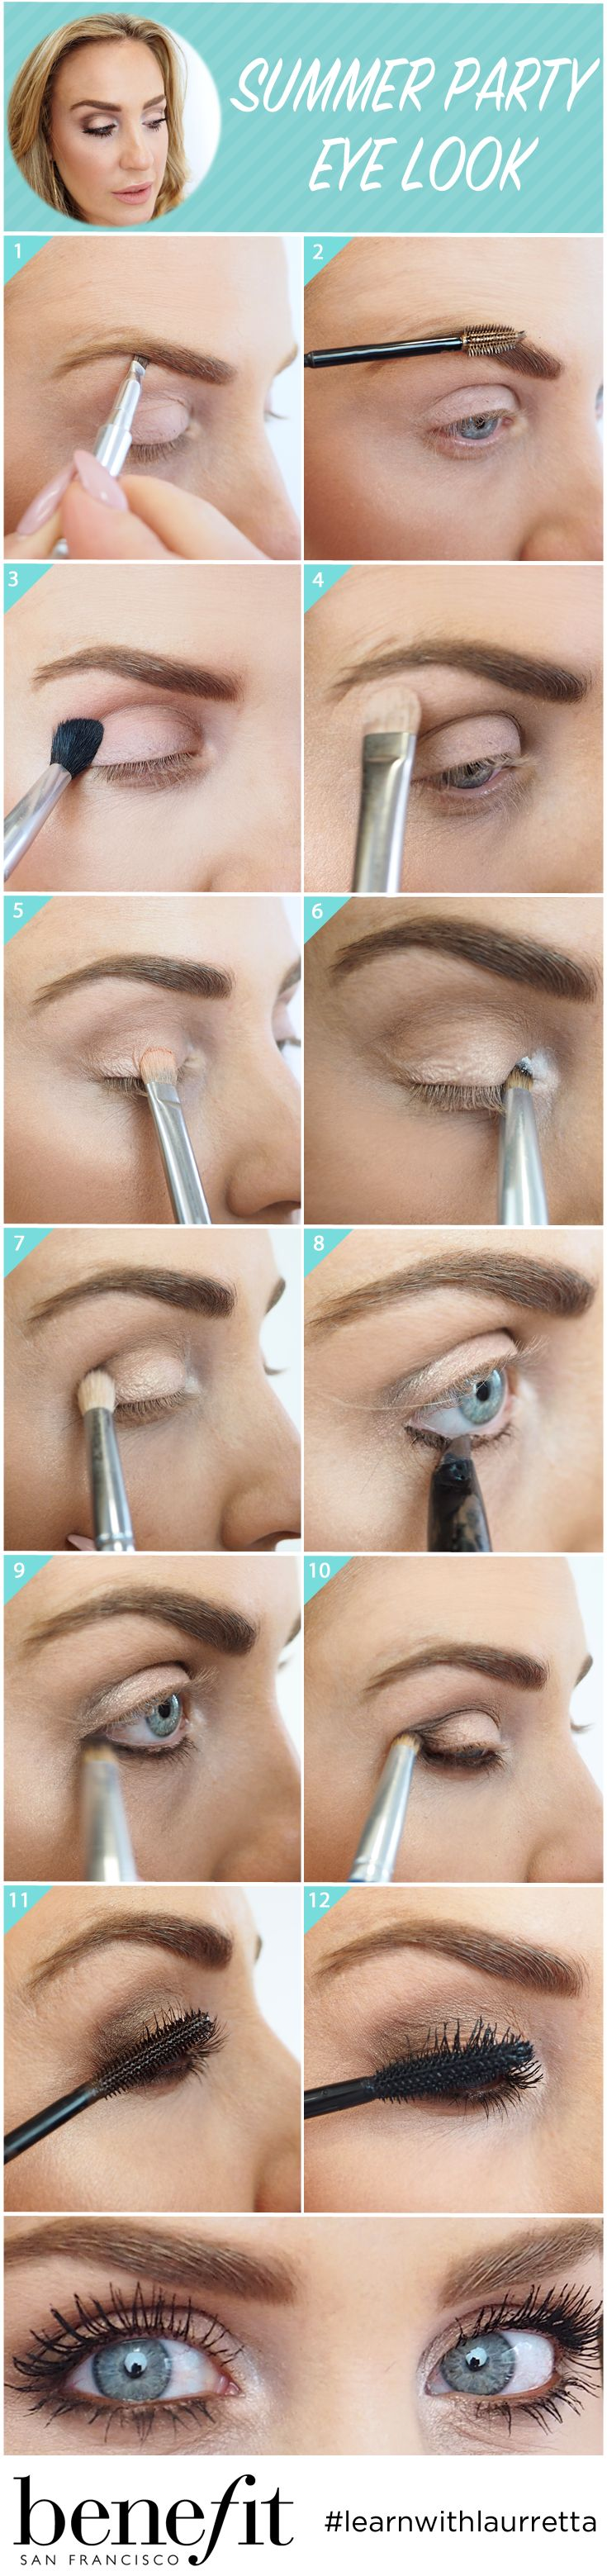 1/ Fill brows with kabrow & 3D brow tones 3/ Buff hoola into the socket 4/ Apply pinky swear under the brow bone 5/ Apply it's complicated shadow on the lid 6/ Dot milk it eye shadow onto the inner corner of eye 7/ Use a matte brown eye shadow on the outer corner of the eye  8/ Apply they're real push up liner brown under lash line 9/ Quickly buff & blend 10/ Blend any excess into the outer corner of the eye. 11/ Apply they're real tinted primer 12/ Finish with lashings of they're real…